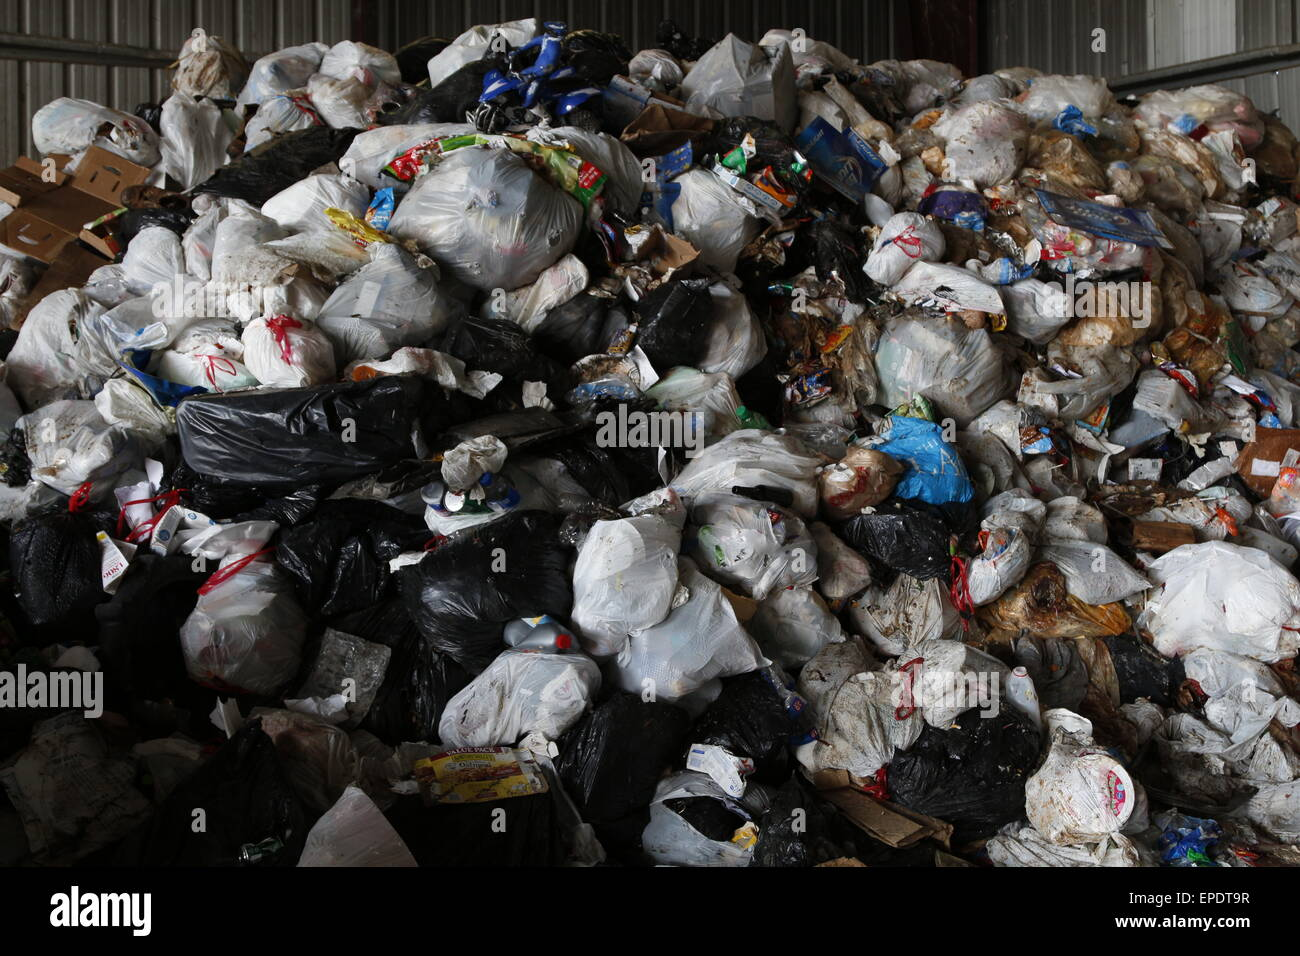 Piles of garbage disposed at a landfill in plastic bags. - Stock Image